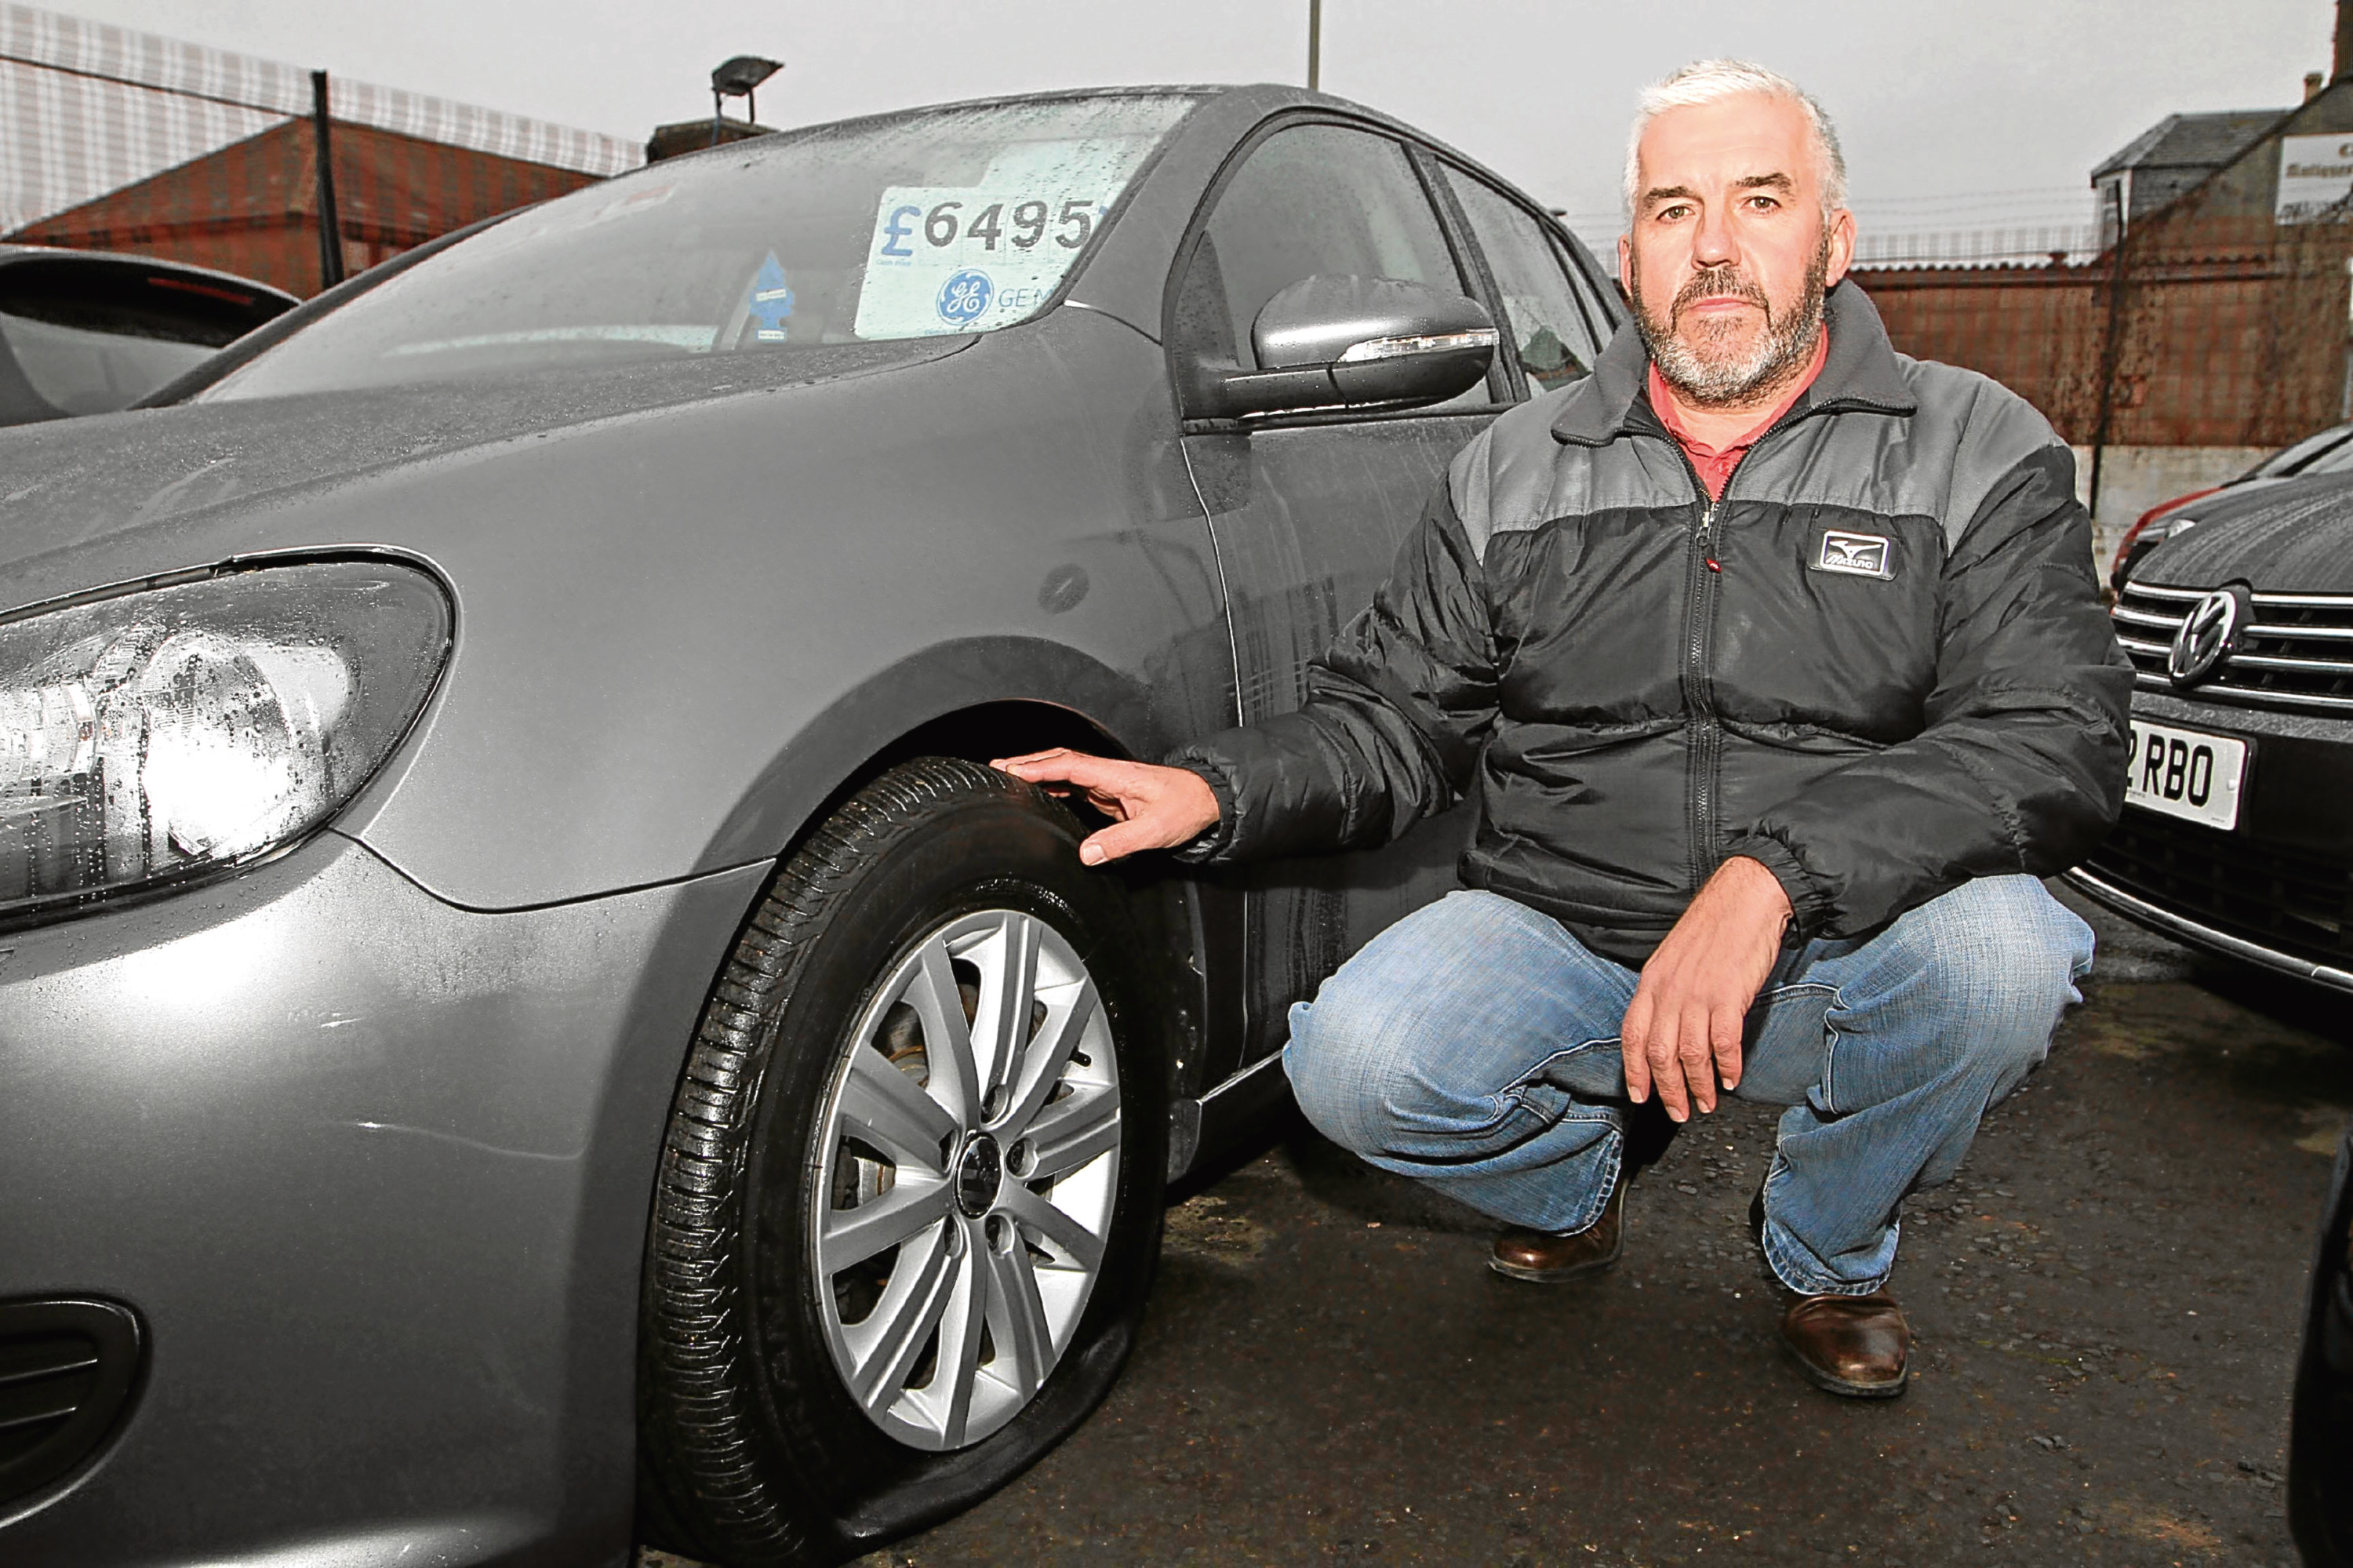 Gordon Sinclair next to one of the vehicles damaged at Cowgate Motors.